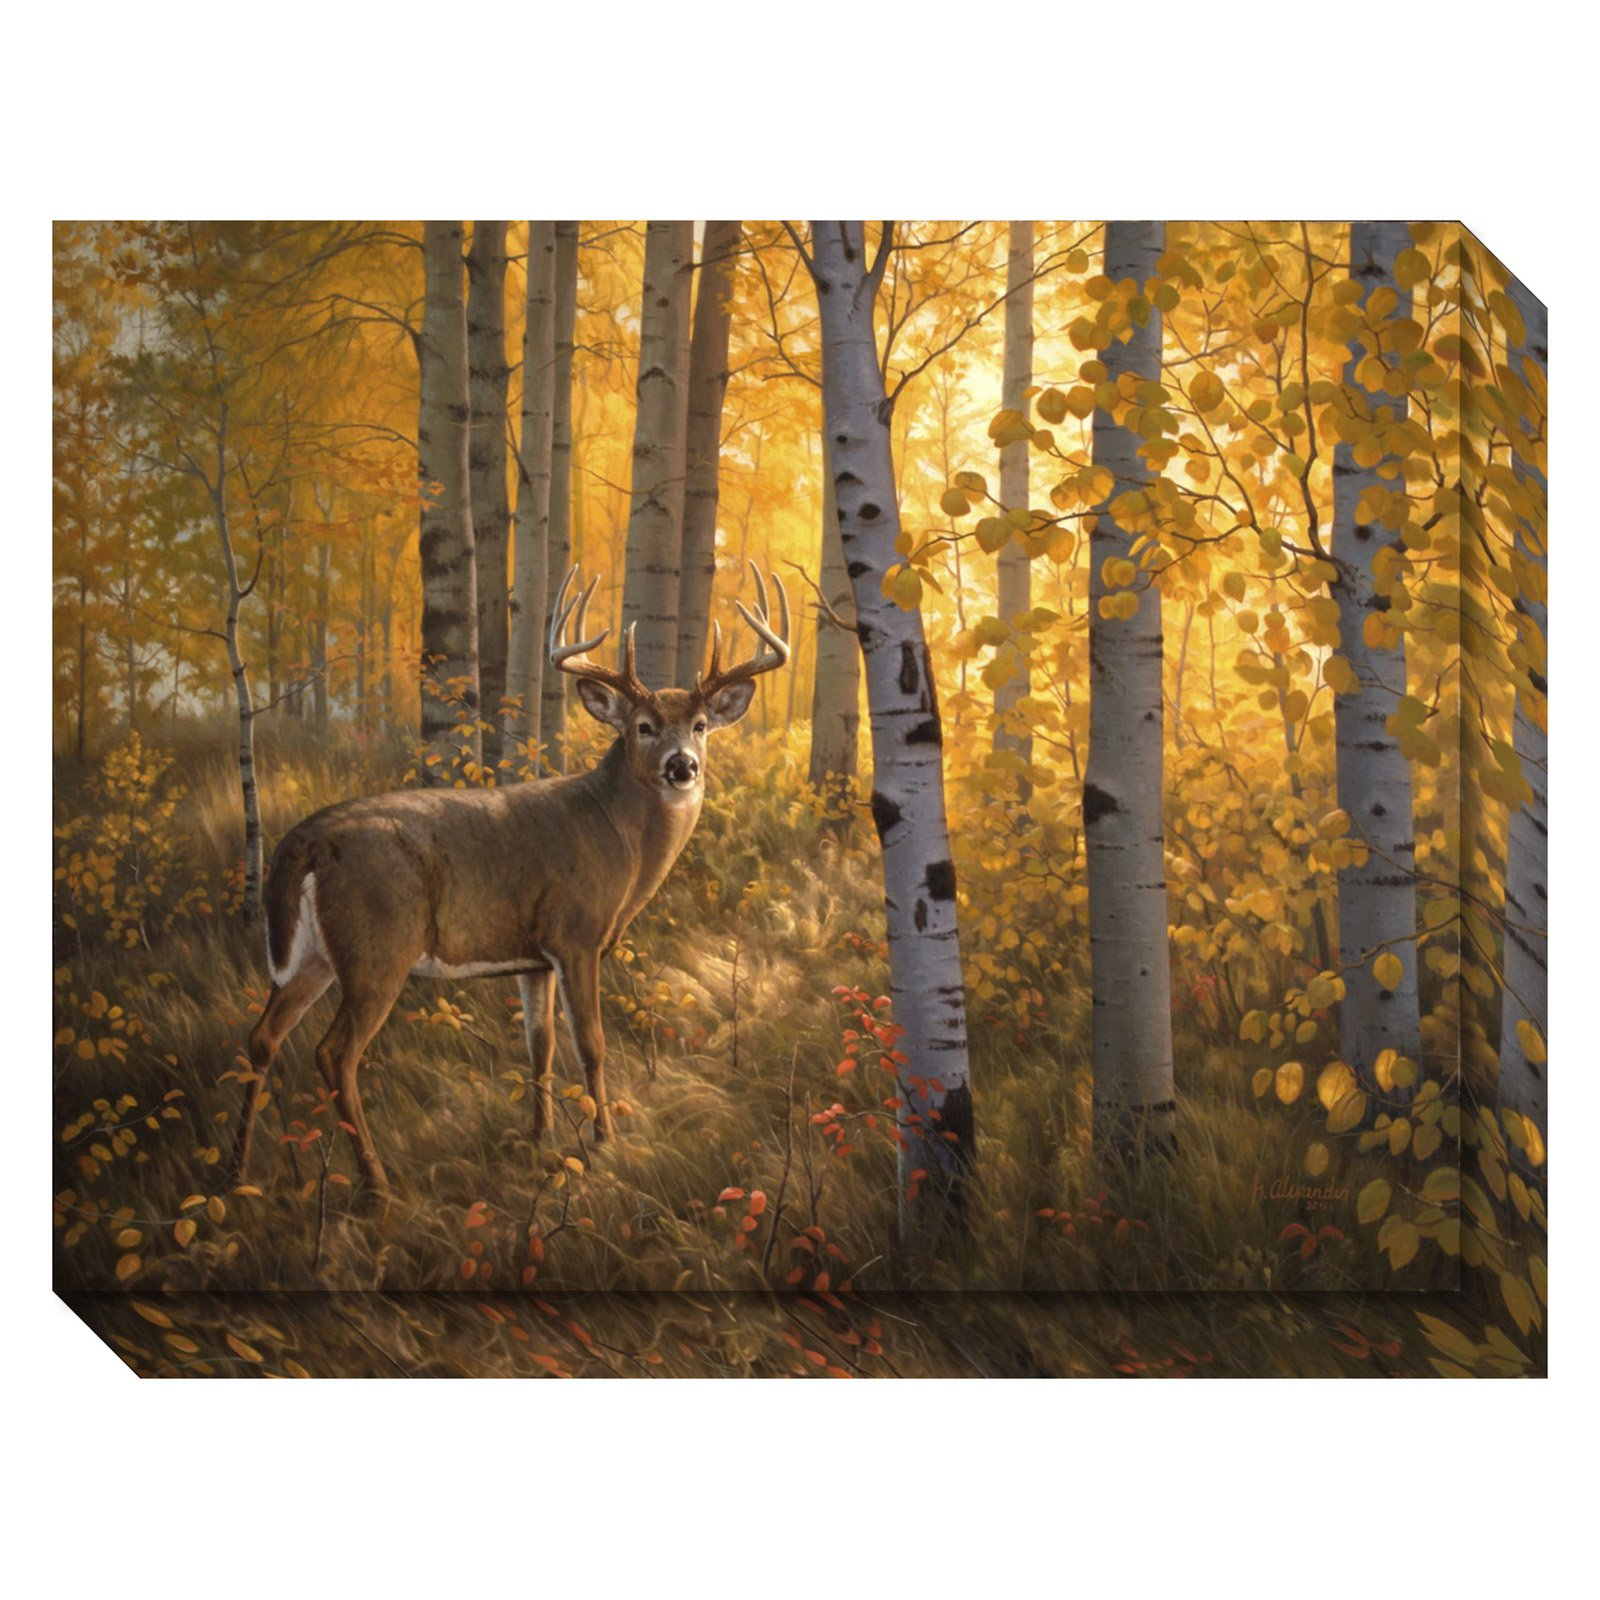 Amanti Art Canvas Gallery Wrap Whitetail in Aspens by Greg Alexander by Amanti Art